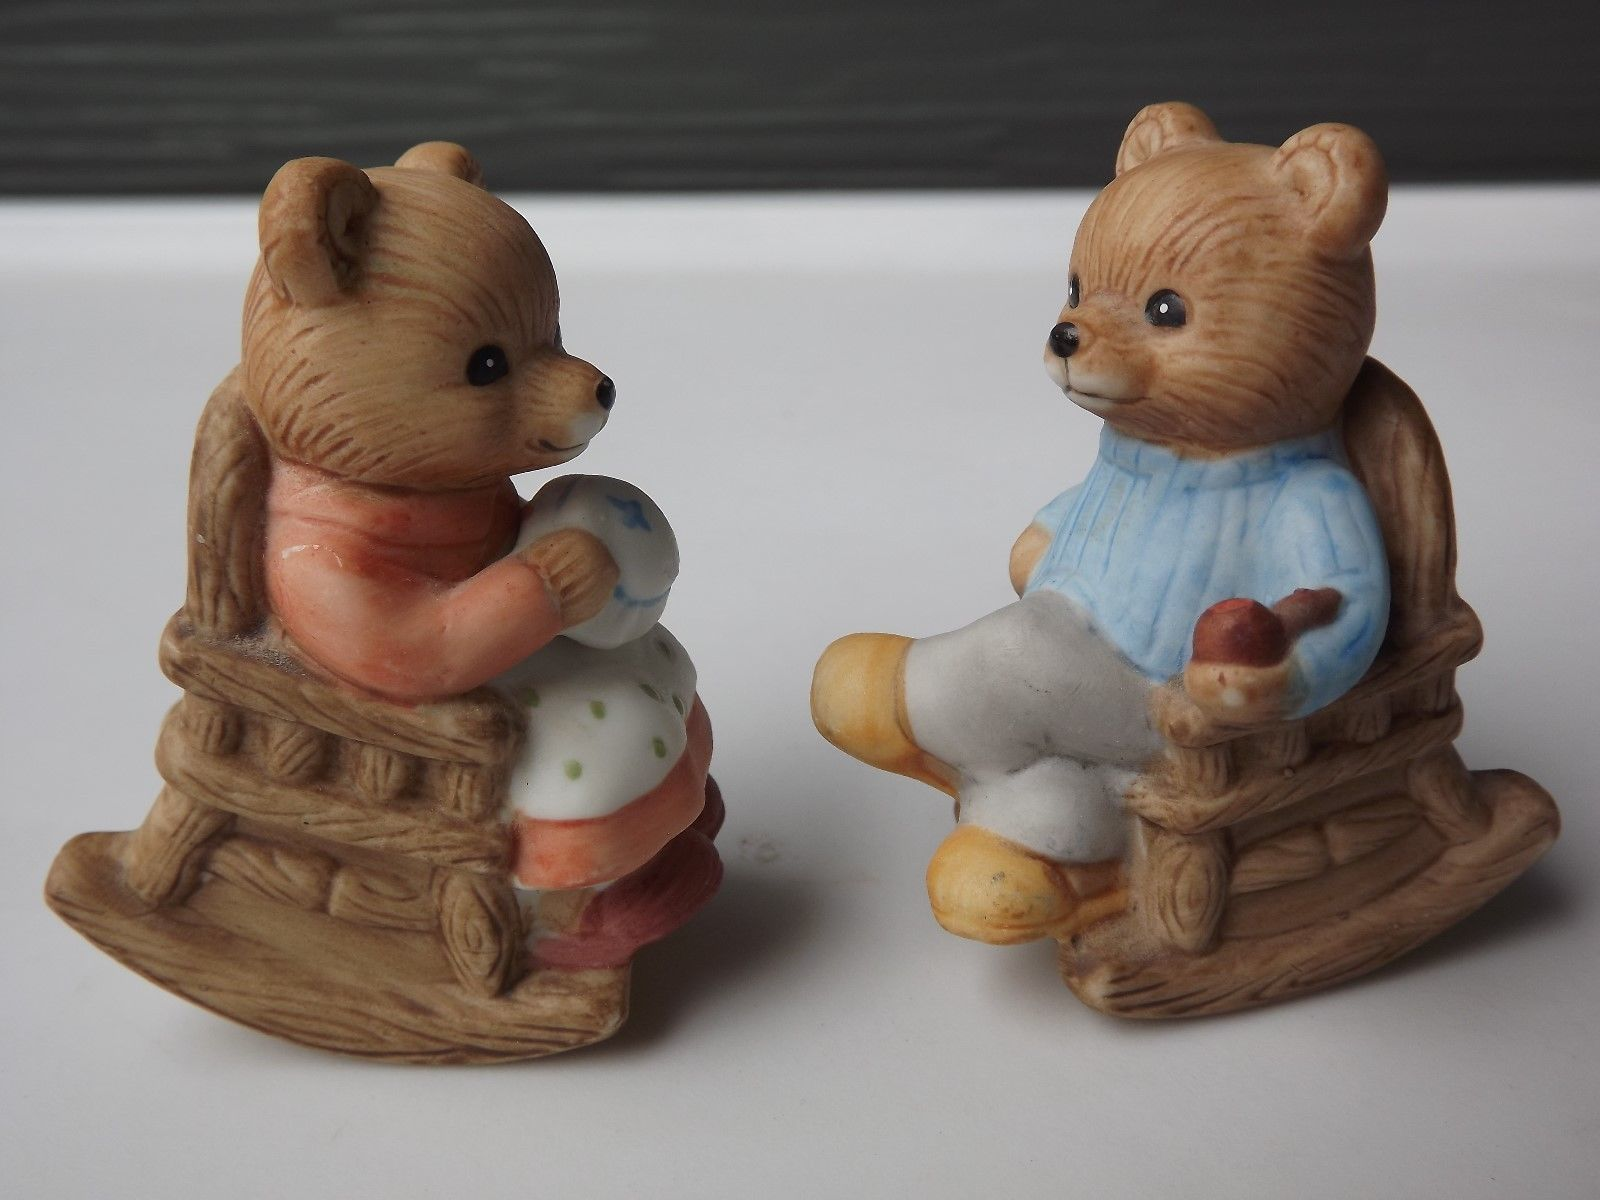 Primary image for Homco Porcelain Teddy Bears in Rocking Chairs Figurines